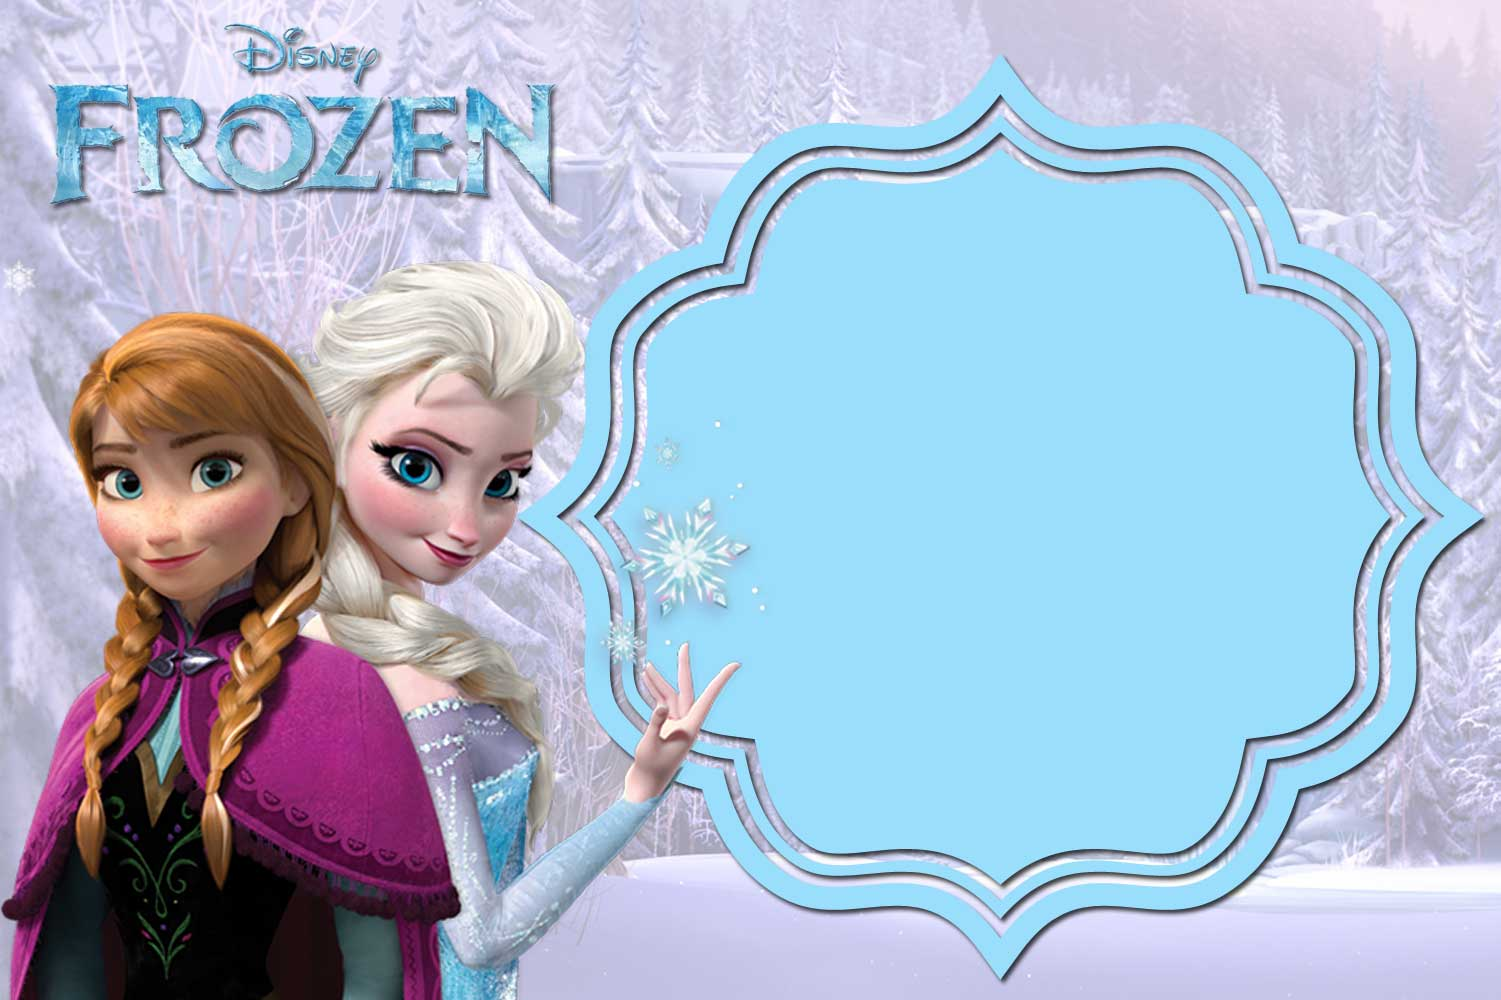 Free printable frozen anna and elsa invitation templates drevio this frozen invitation template is free to use for your personal use only you can buy cardstock paper at amazon cardstock paper gives authentic and solutioingenieria